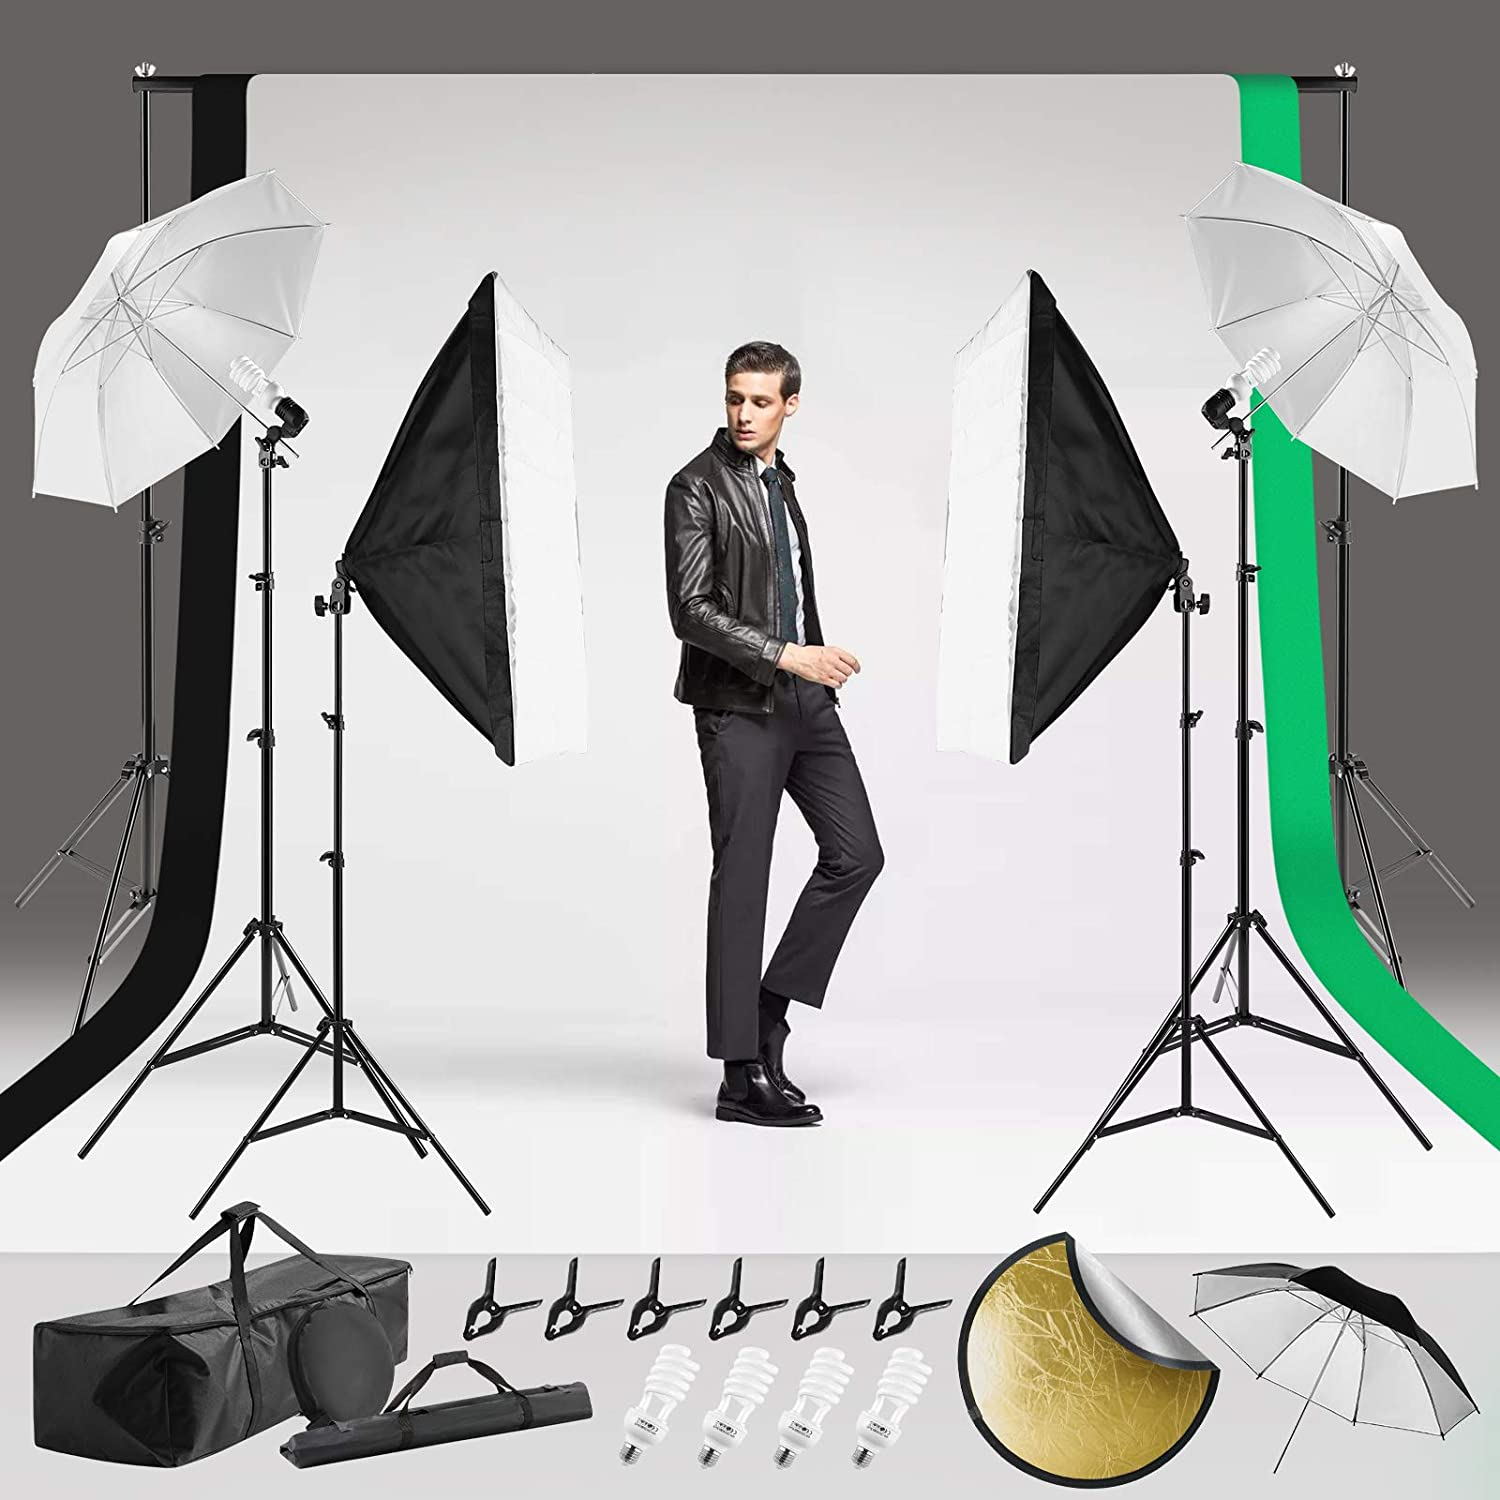 COSVALVE Photography Lighting Kit,800W 5500K Light Umbrella Continuous Softbox Professional Set with Adjustable 2X3M Background Support System,3 Color Backdrop for Photo Portrait Studio Video Shooting